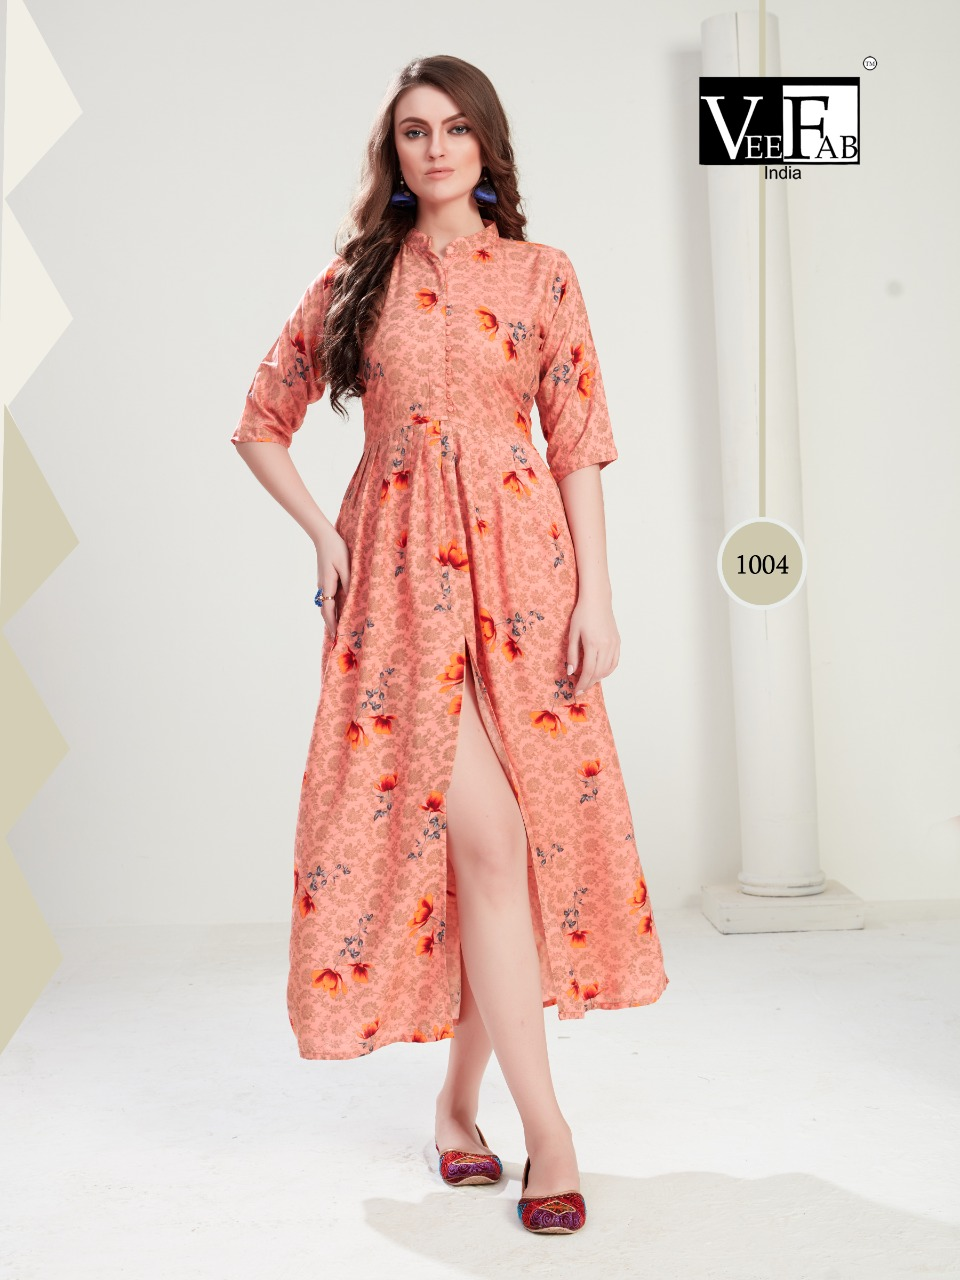 Vee Fab India Daisy Vol 2 collection 1